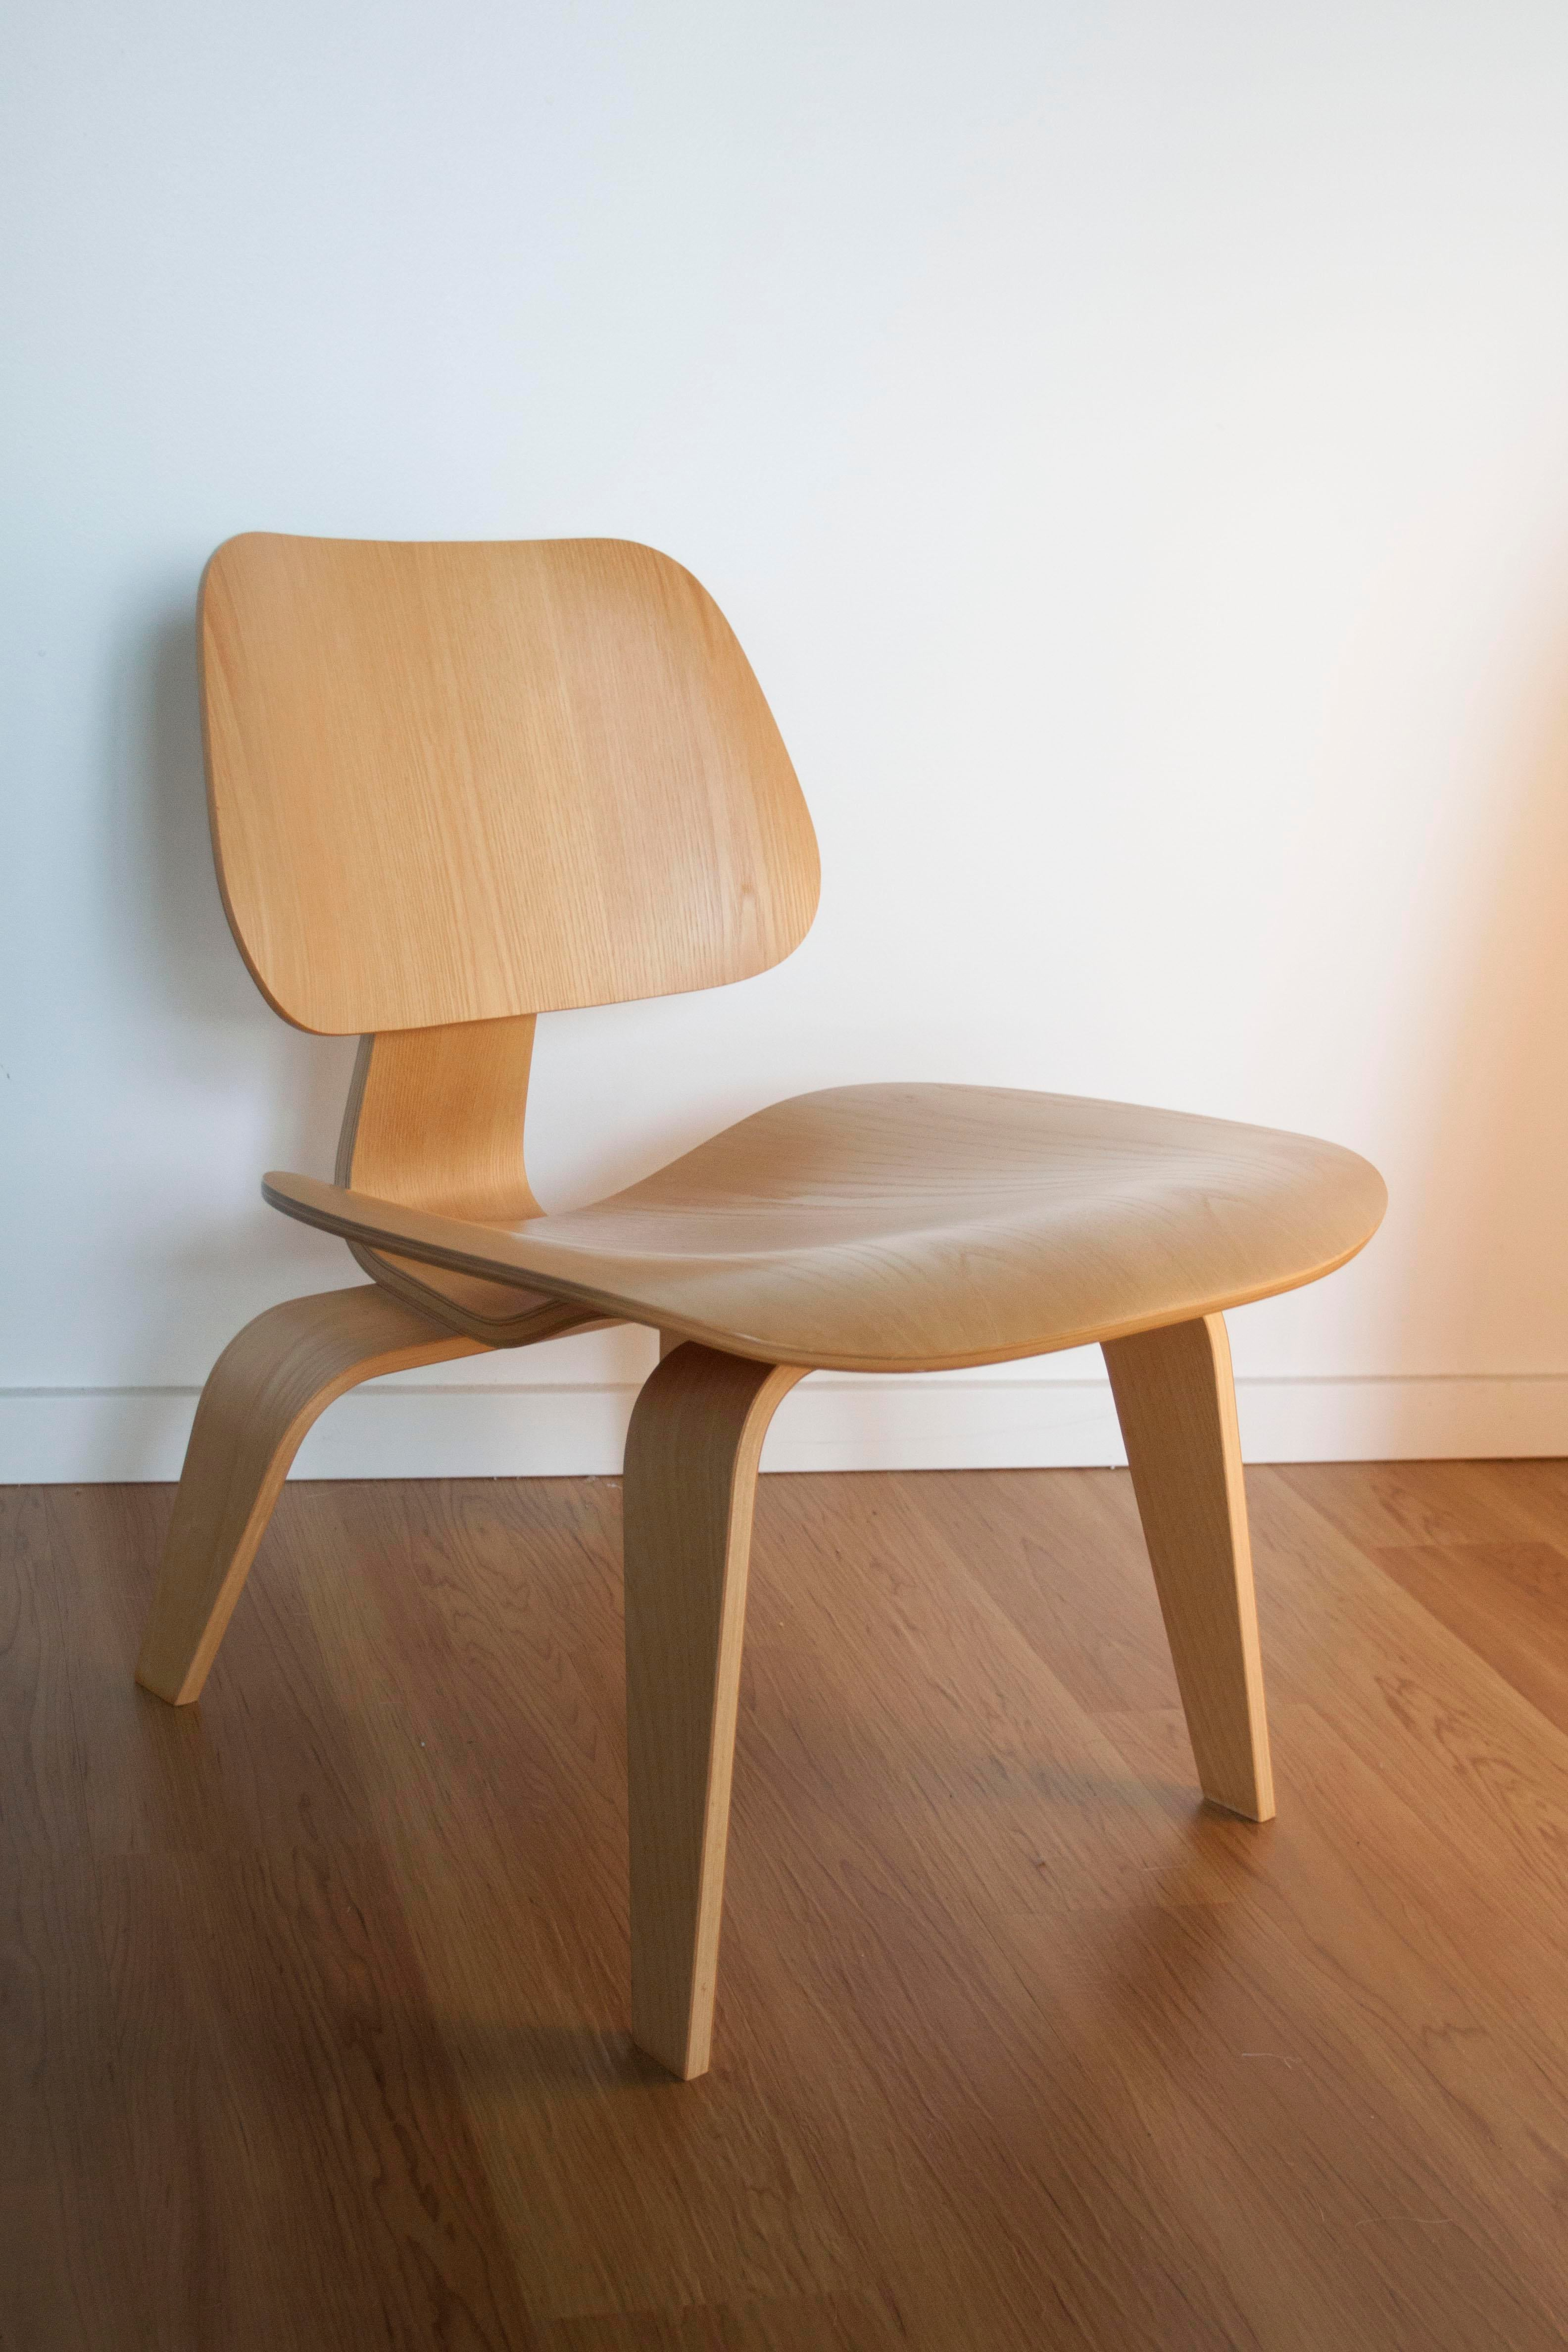 Eames Herman Miller LCW Chair   Image 2 Of 10